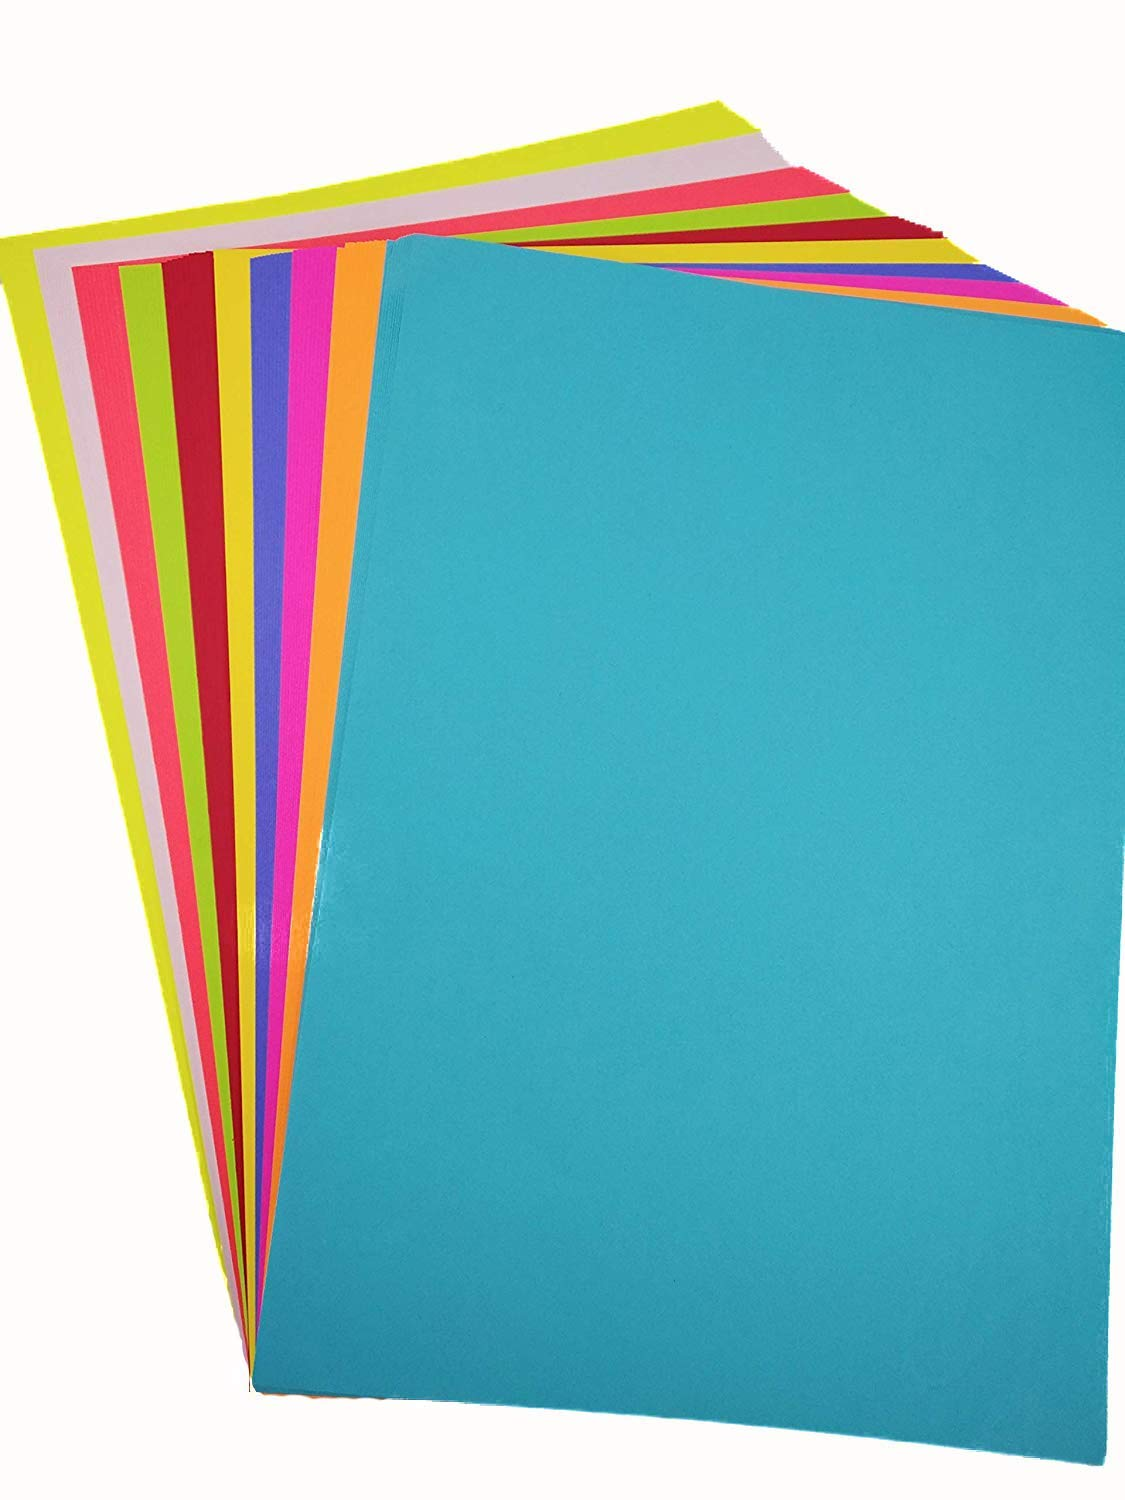 A4 Color Paper Premium Neon Colours Pack of 50 Sheets (10 Colors x 5 Sheets Each Colour) for Art & Craft Work. (50 Sheets) product image